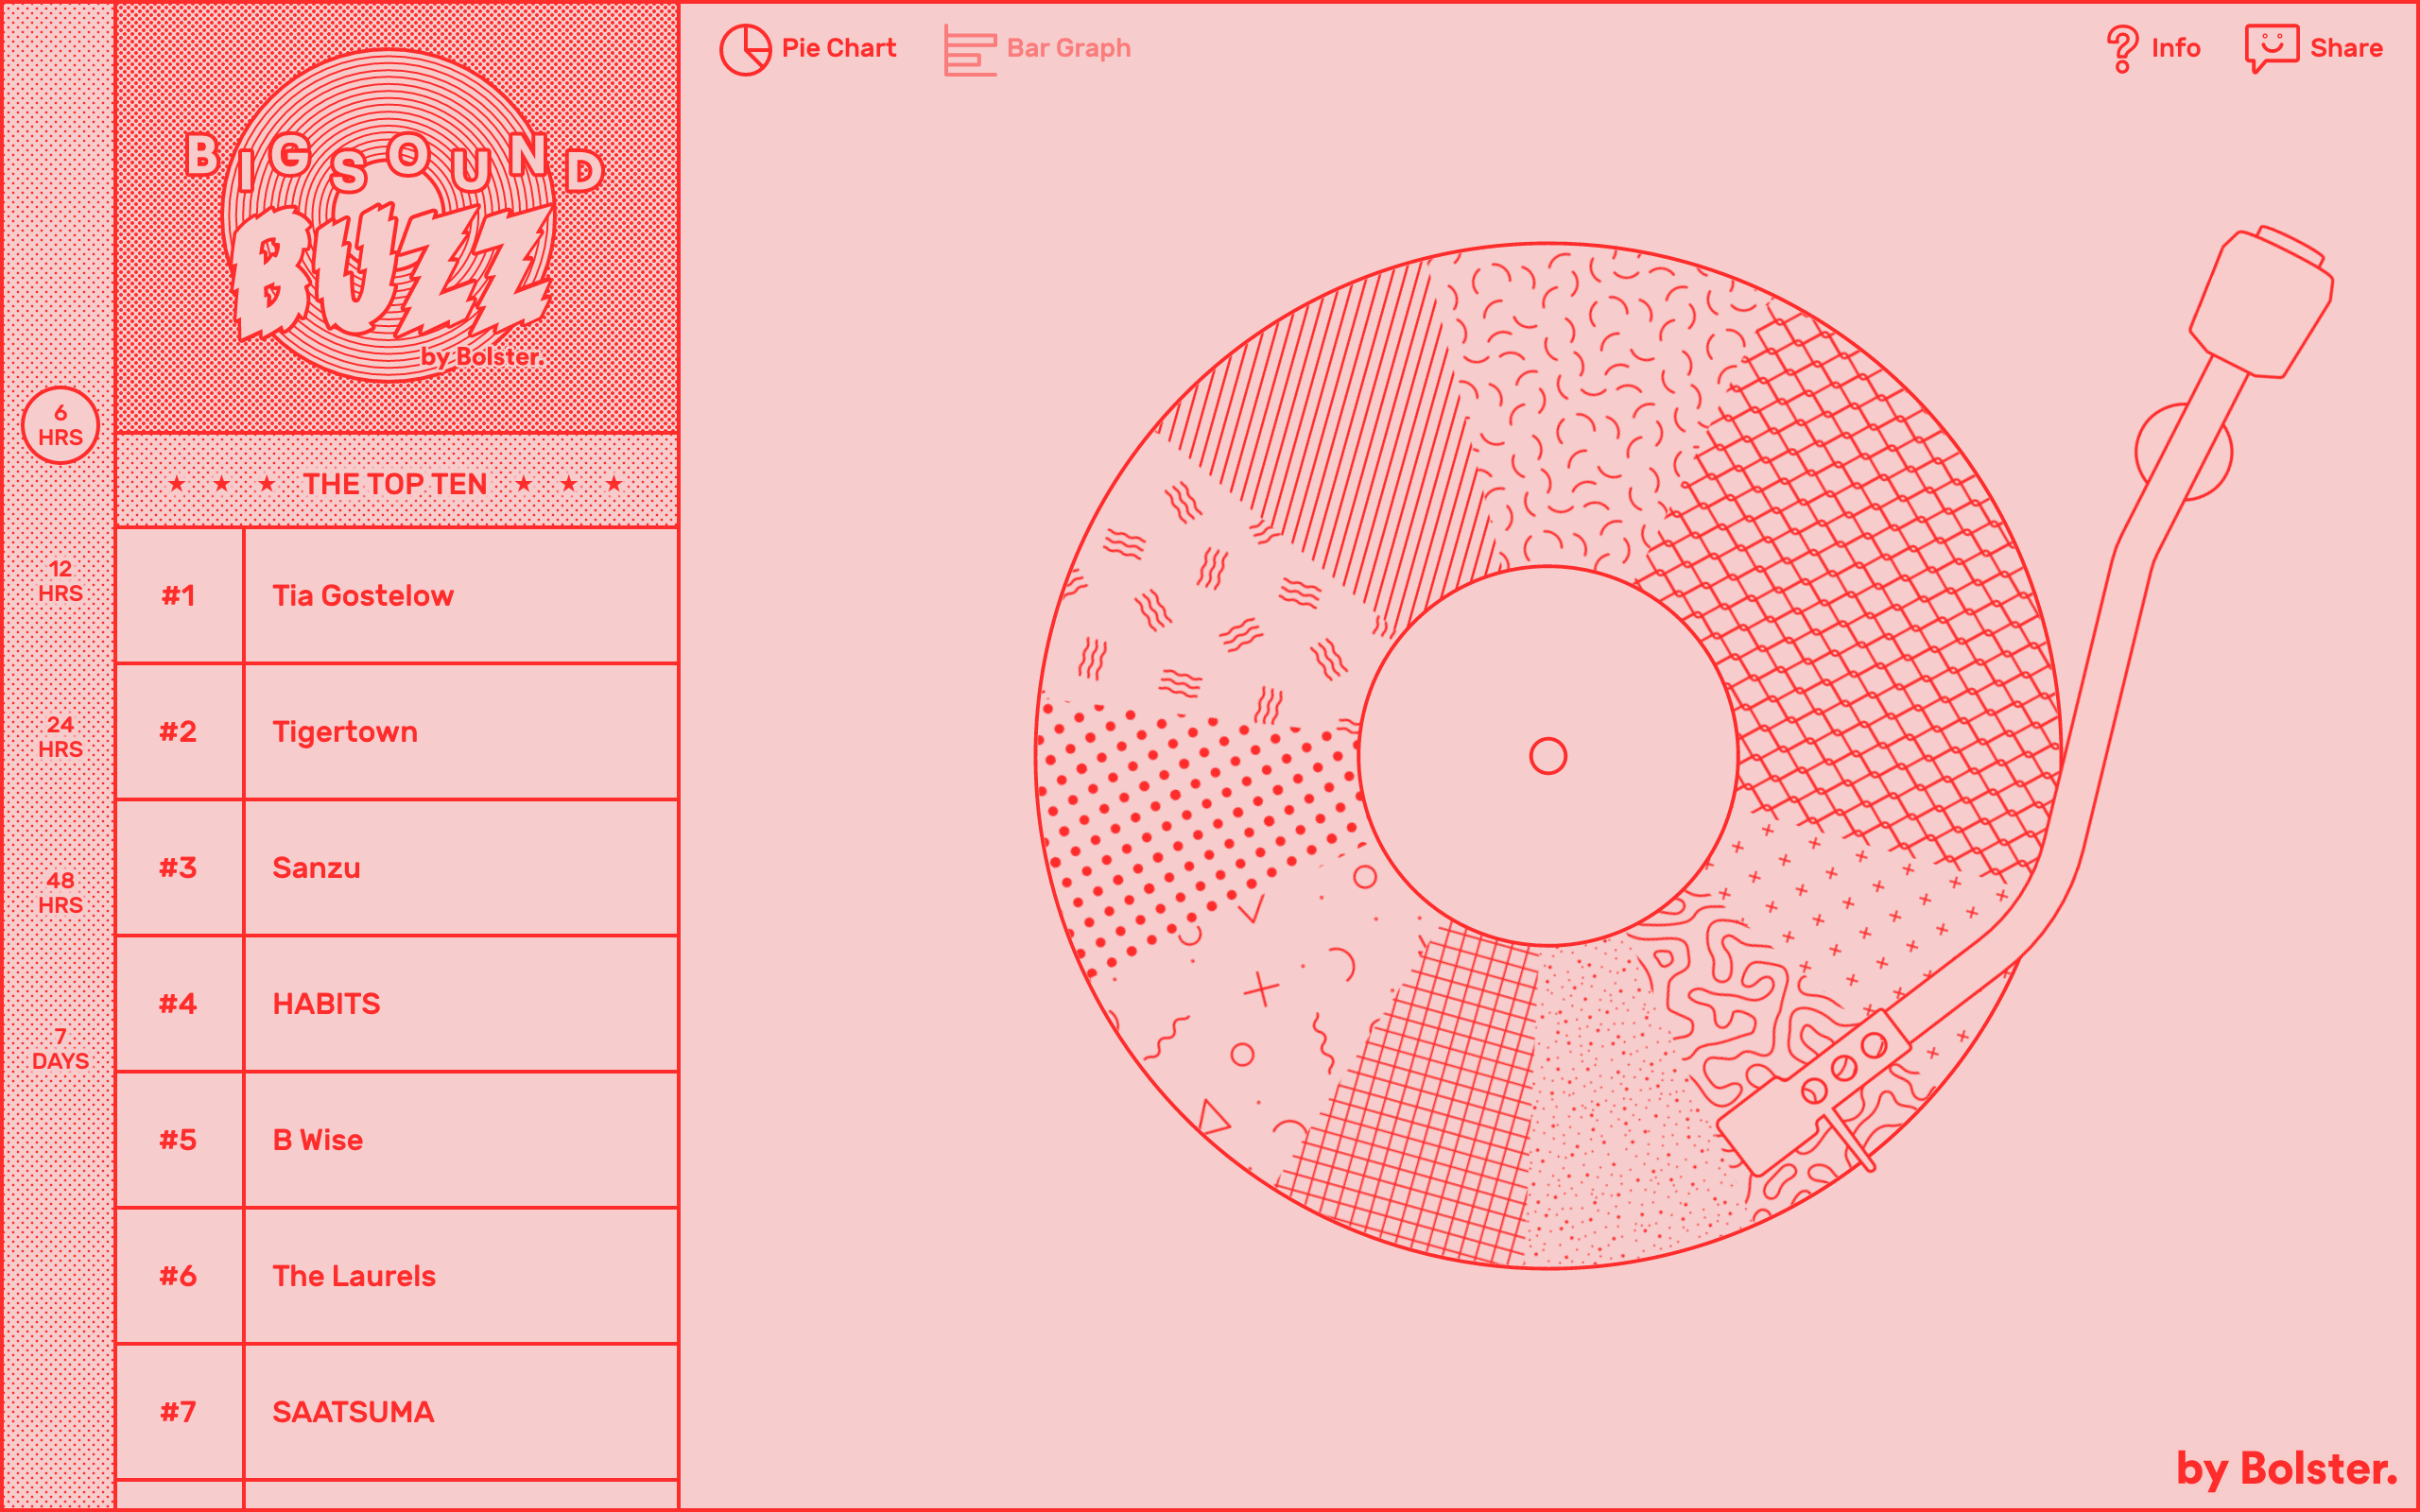 BIGSOUND Buzz Website Screenshot